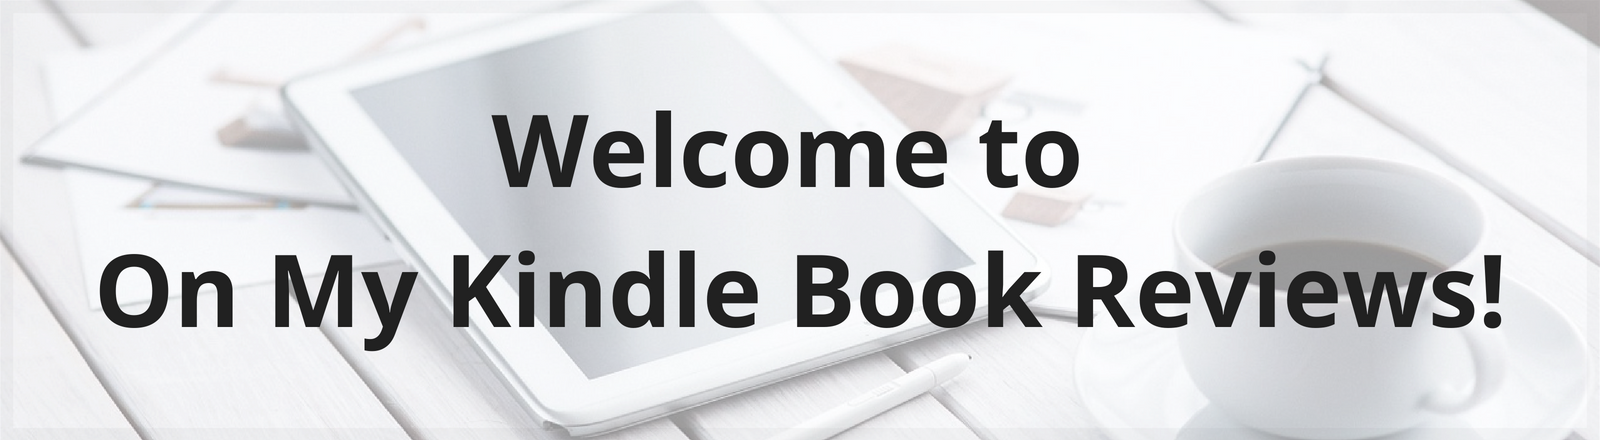 Welcome banner for landing page